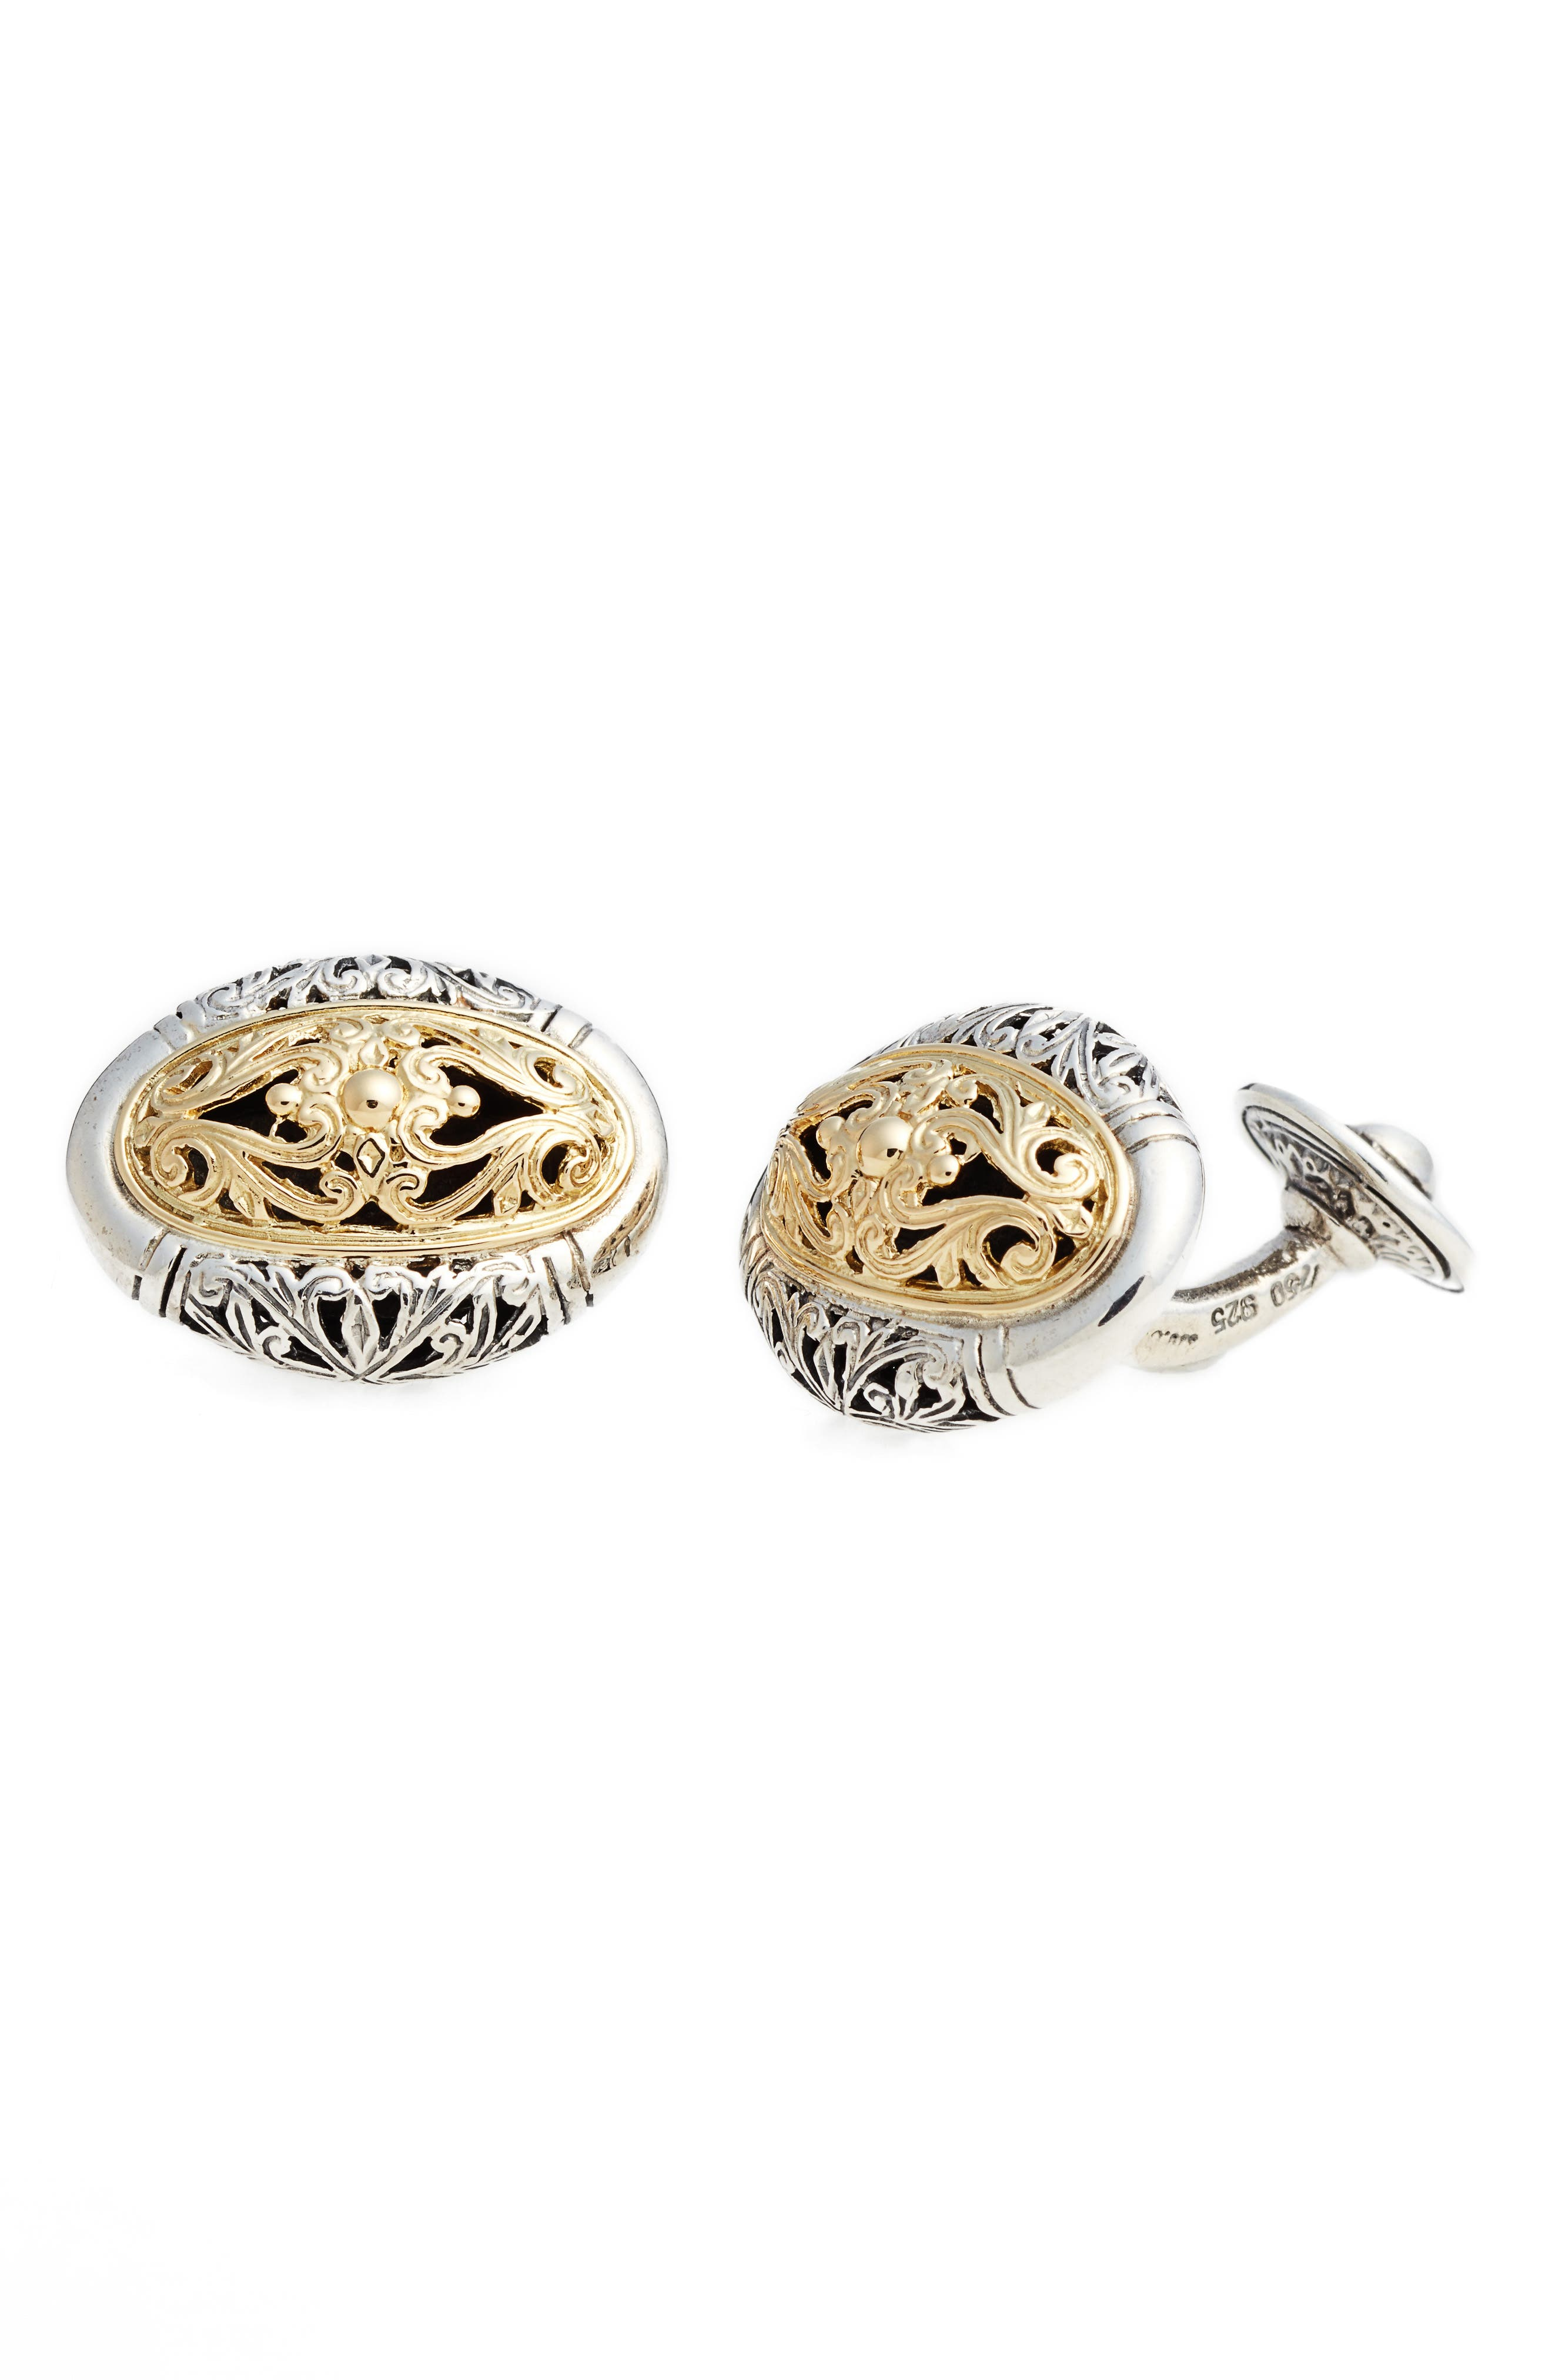 Classics Oval Cuff Links,                             Main thumbnail 1, color,                             SILVER/ GOLD